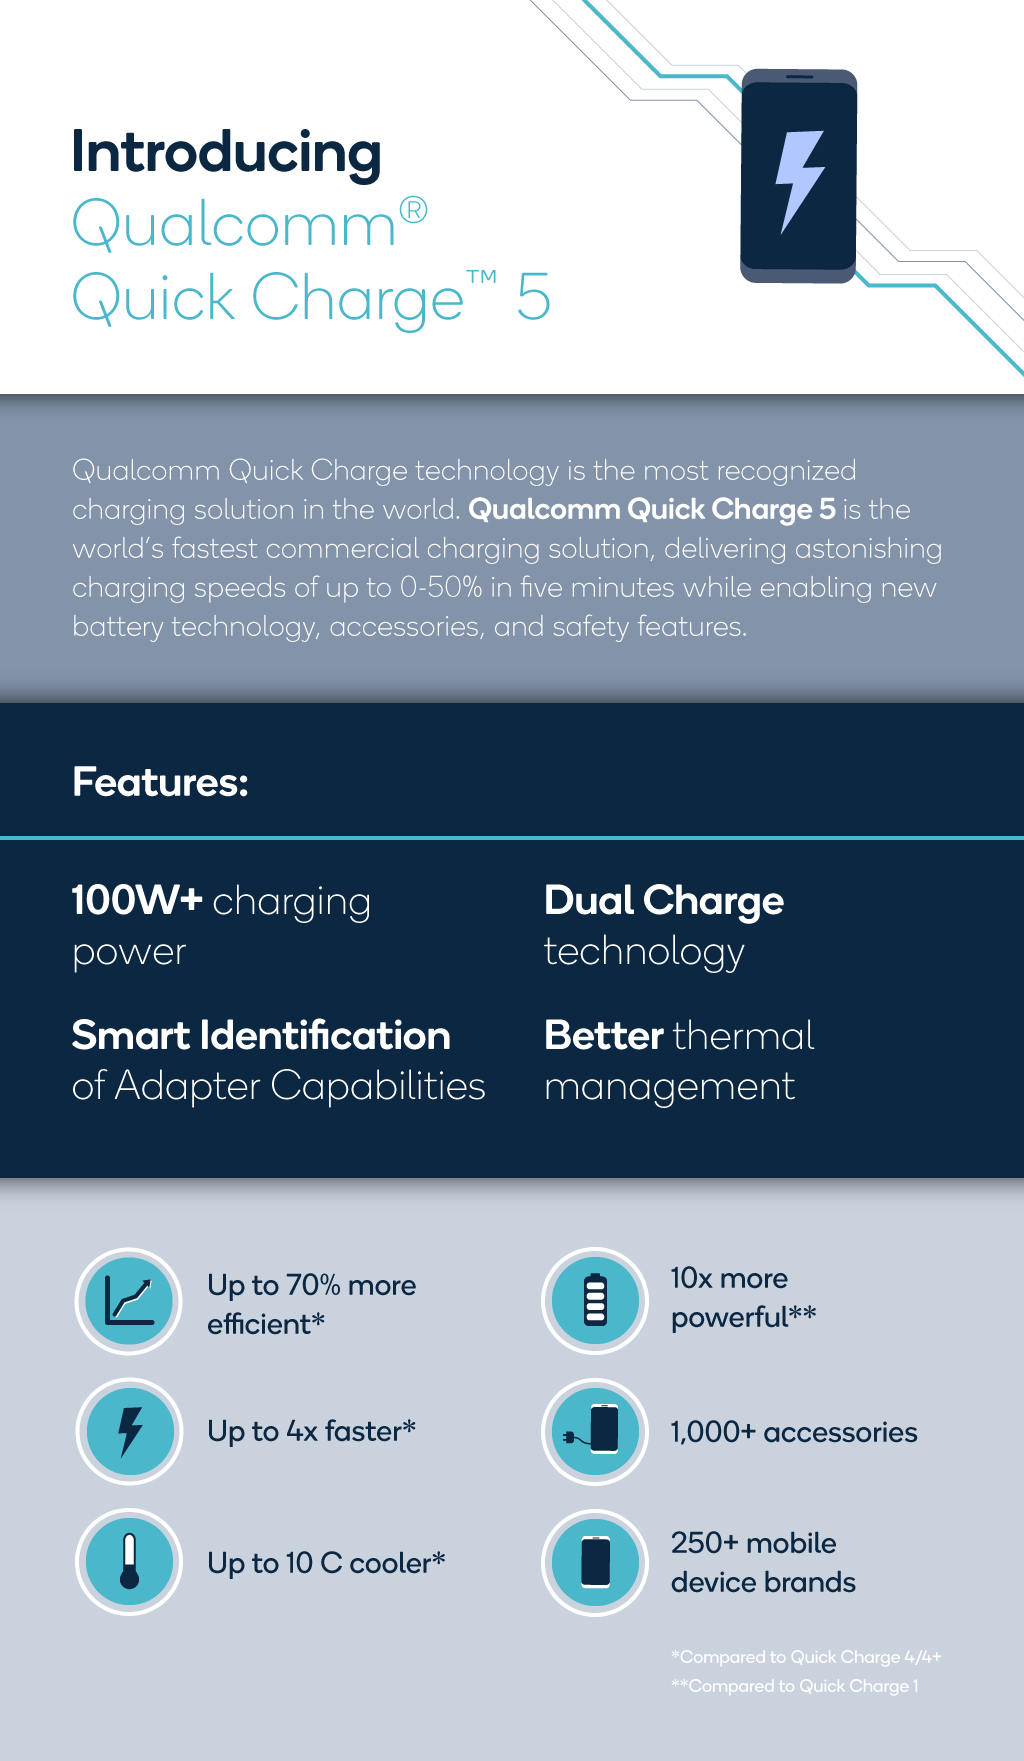 qc_quickcharge5_infographic